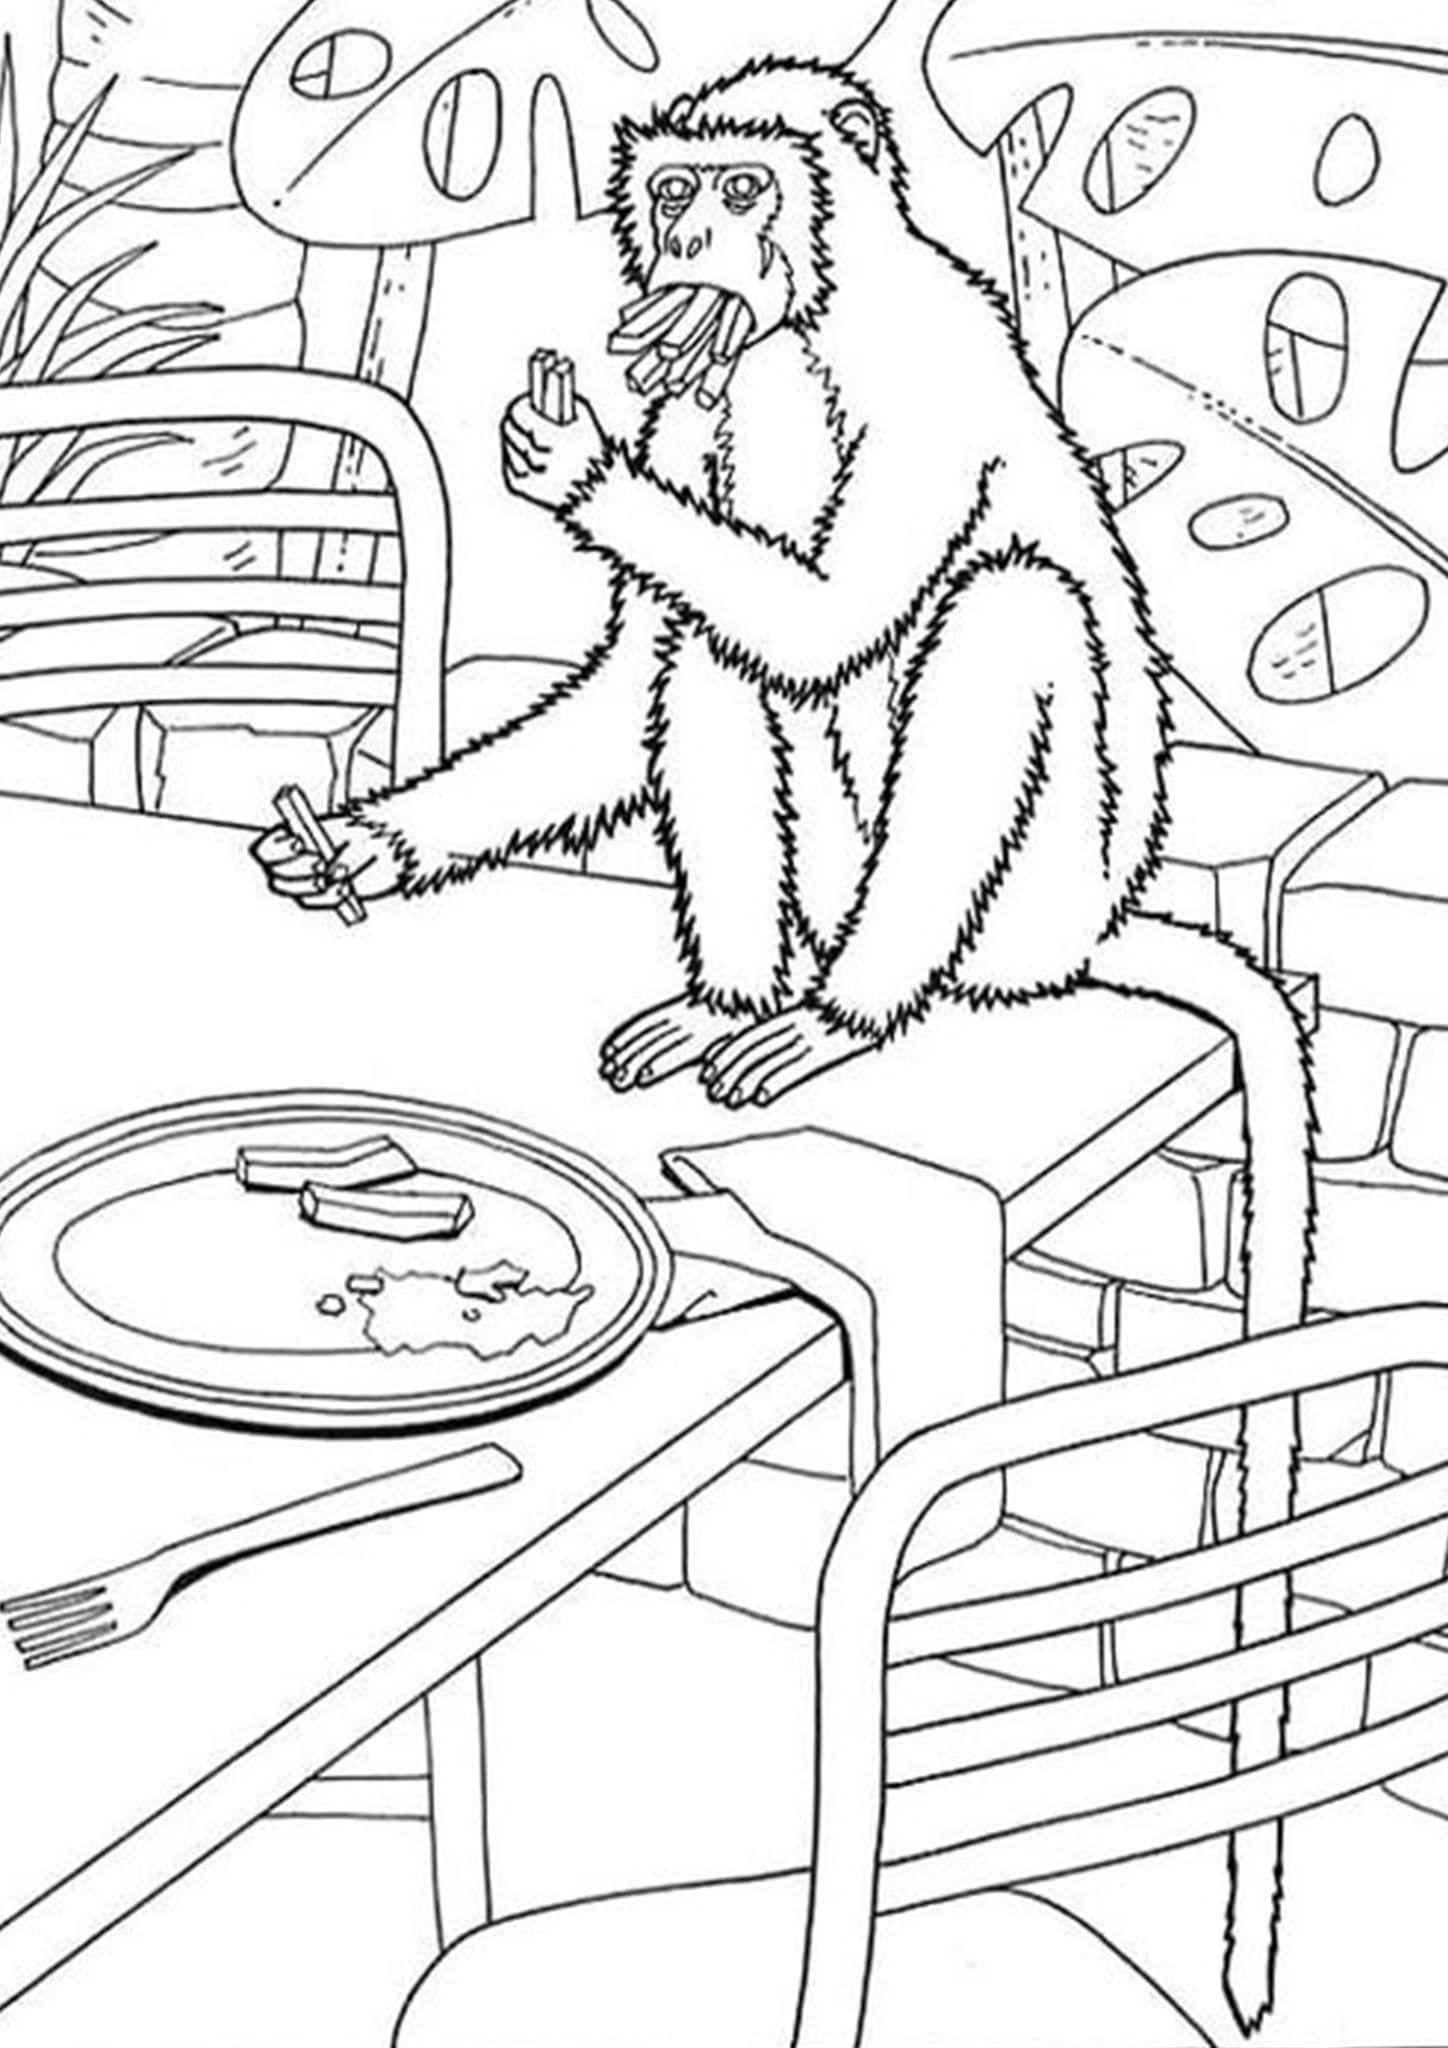 Free Easy To Print Monkey Coloring Pages Monkey Coloring Pages Dinosaur Coloring Pages Coloring Pages